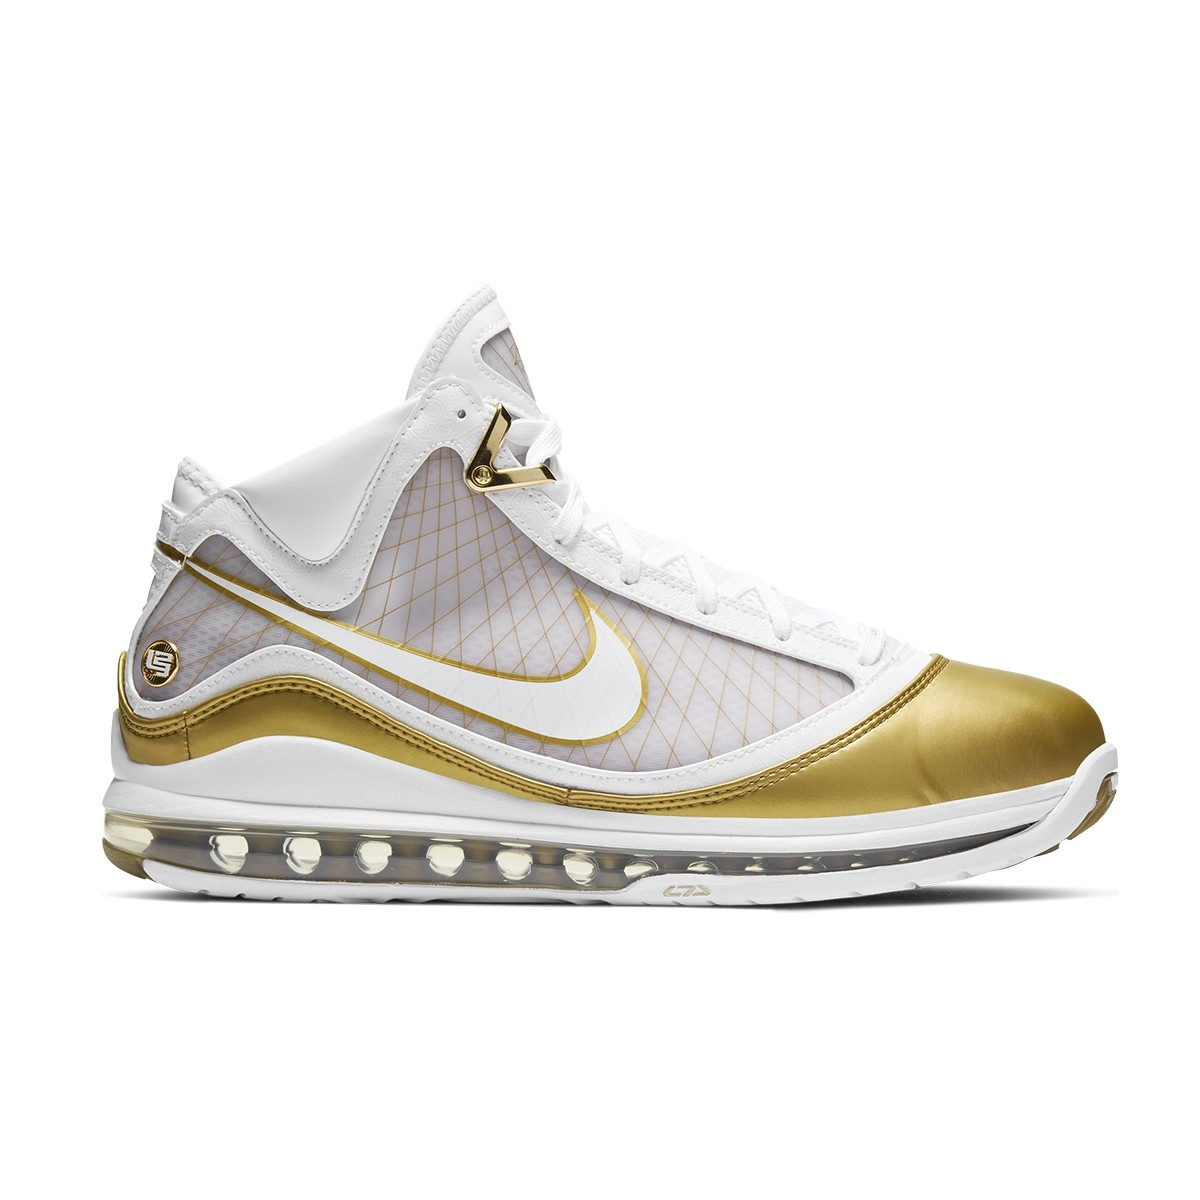 Nike Lebron 7 QS Jr 'China Moon'